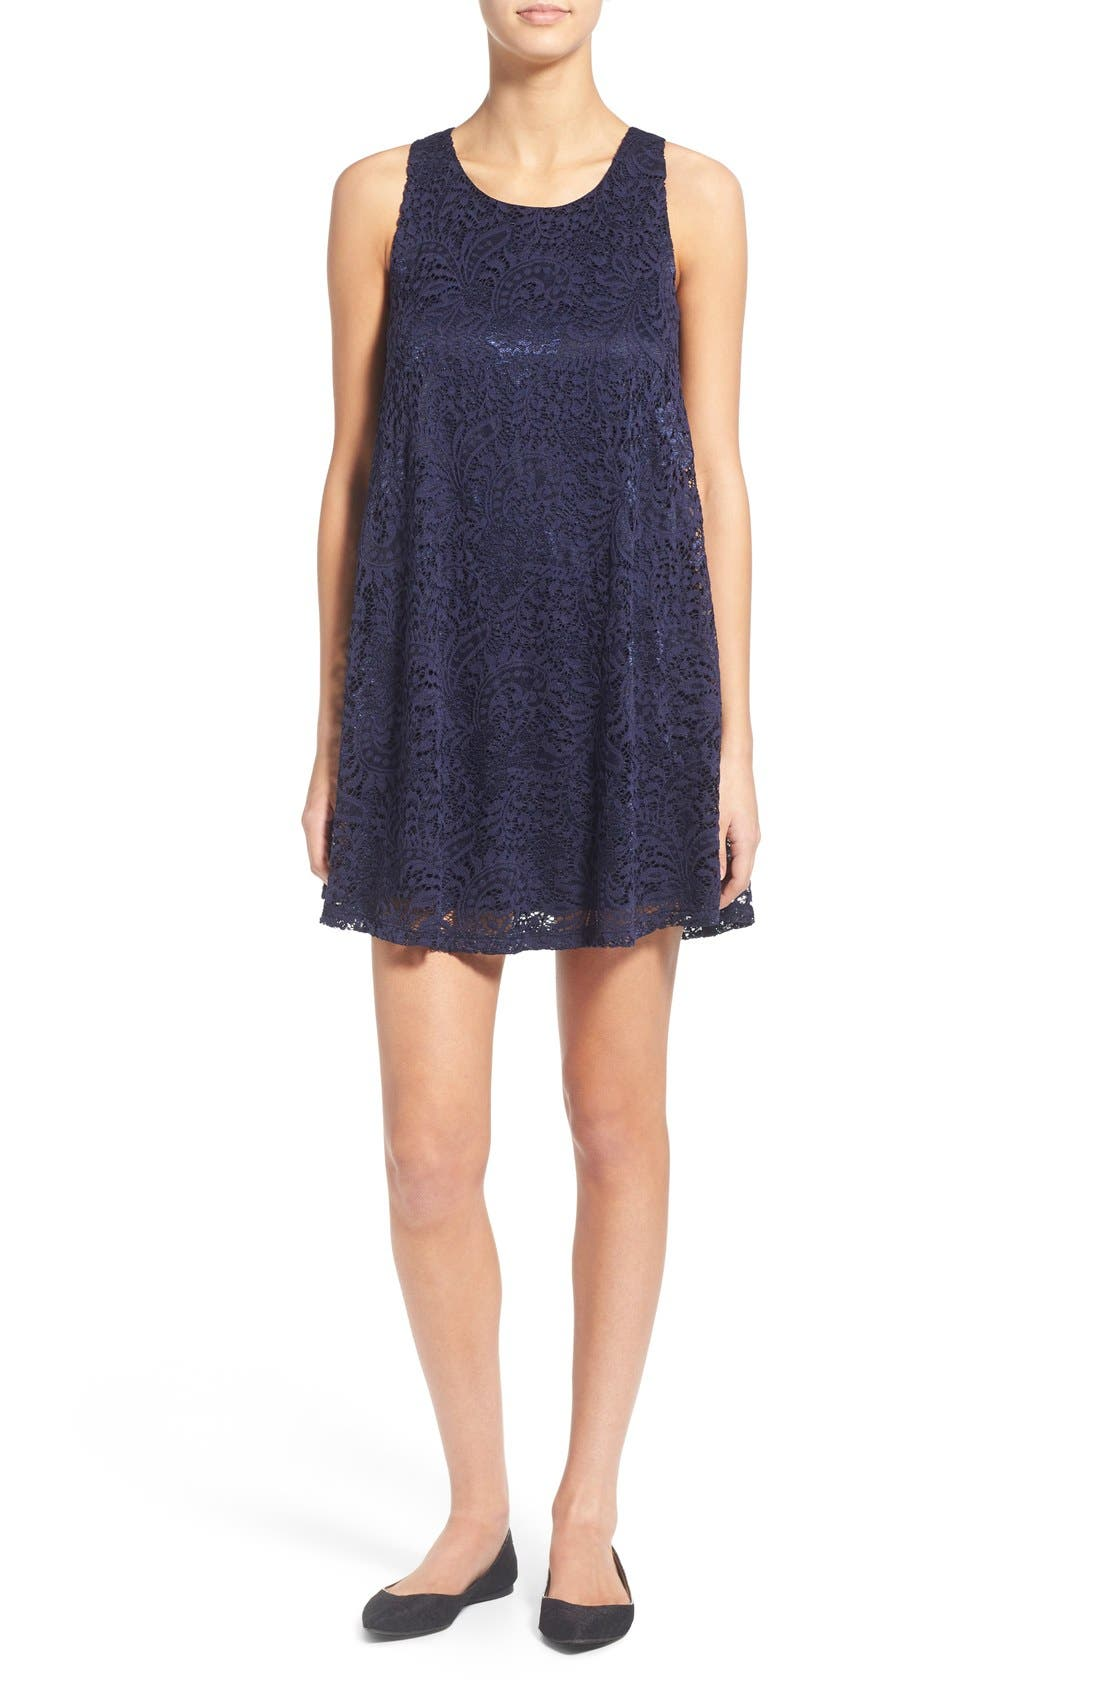 Alternate Image 1 Selected - Everly Lace Shift Dress